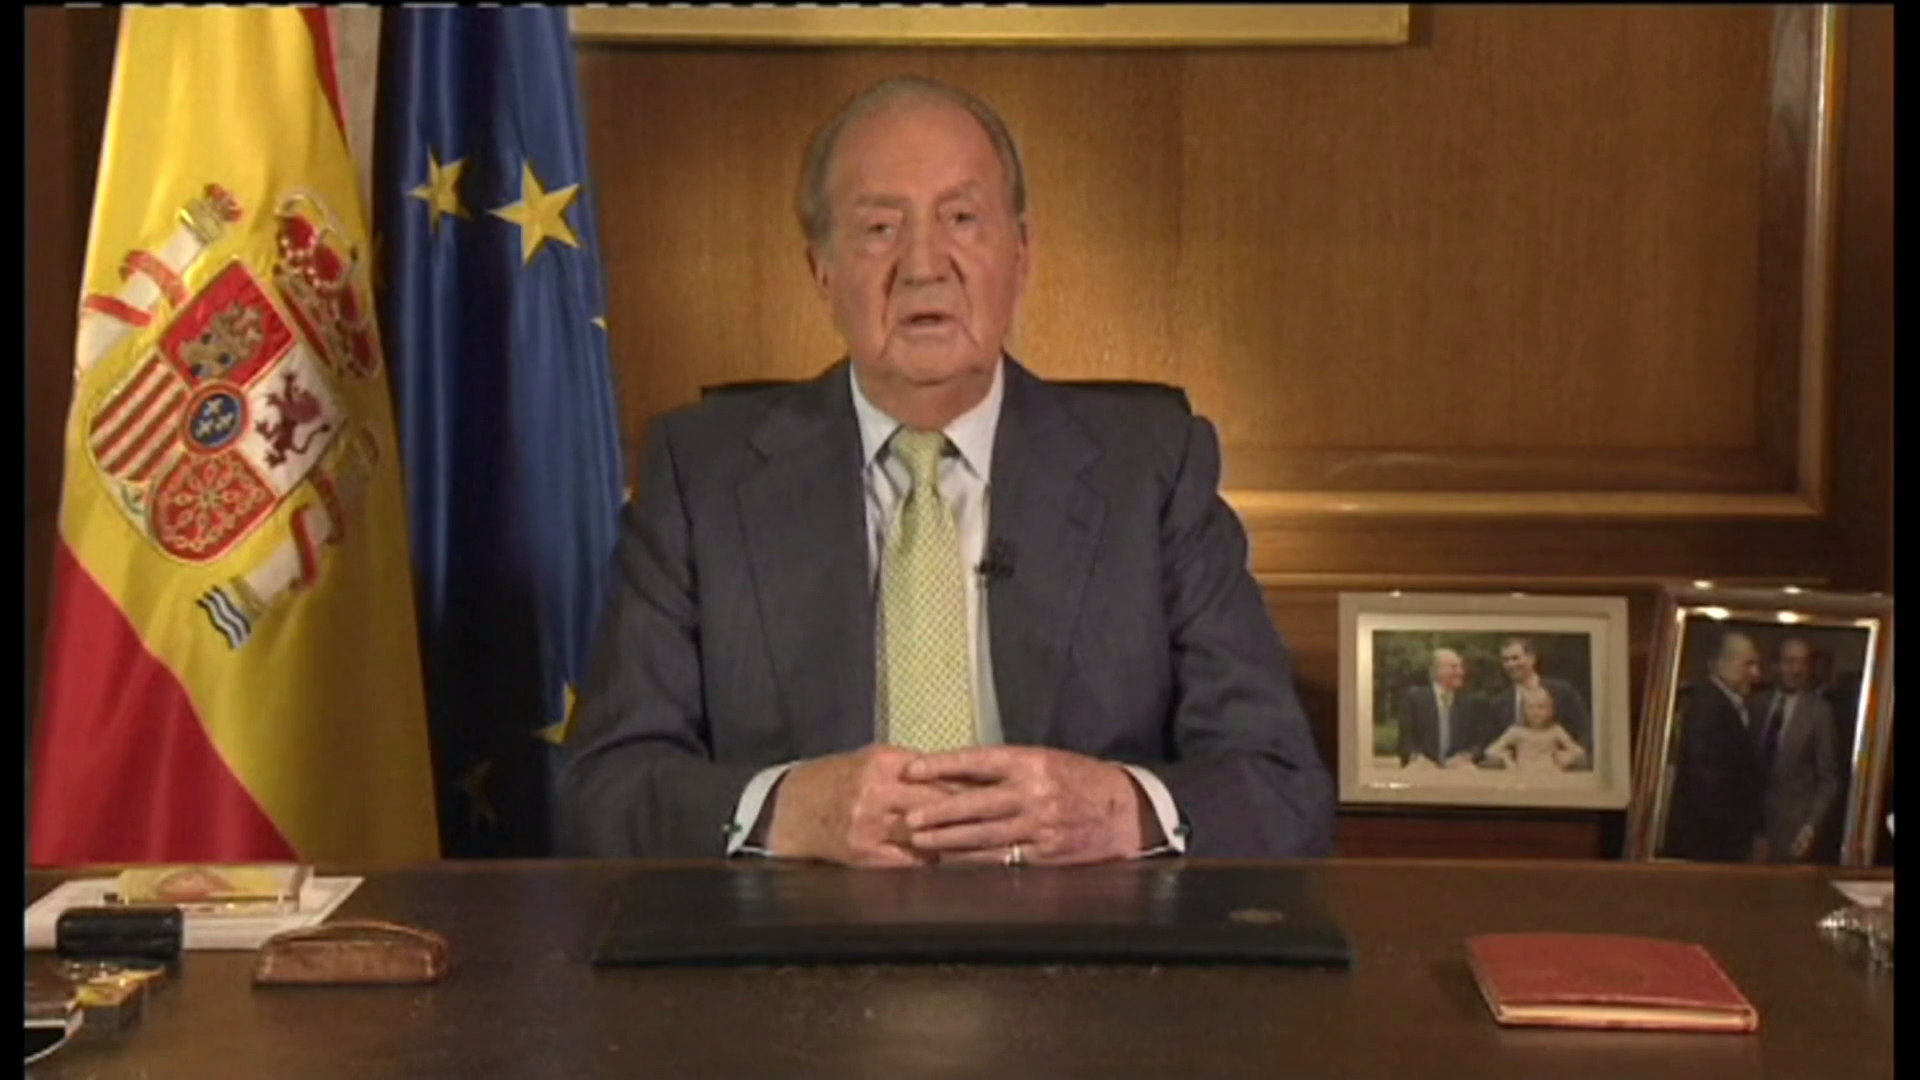 Former King of Spain Juan Carlos leaves country amid scandals - channel 4